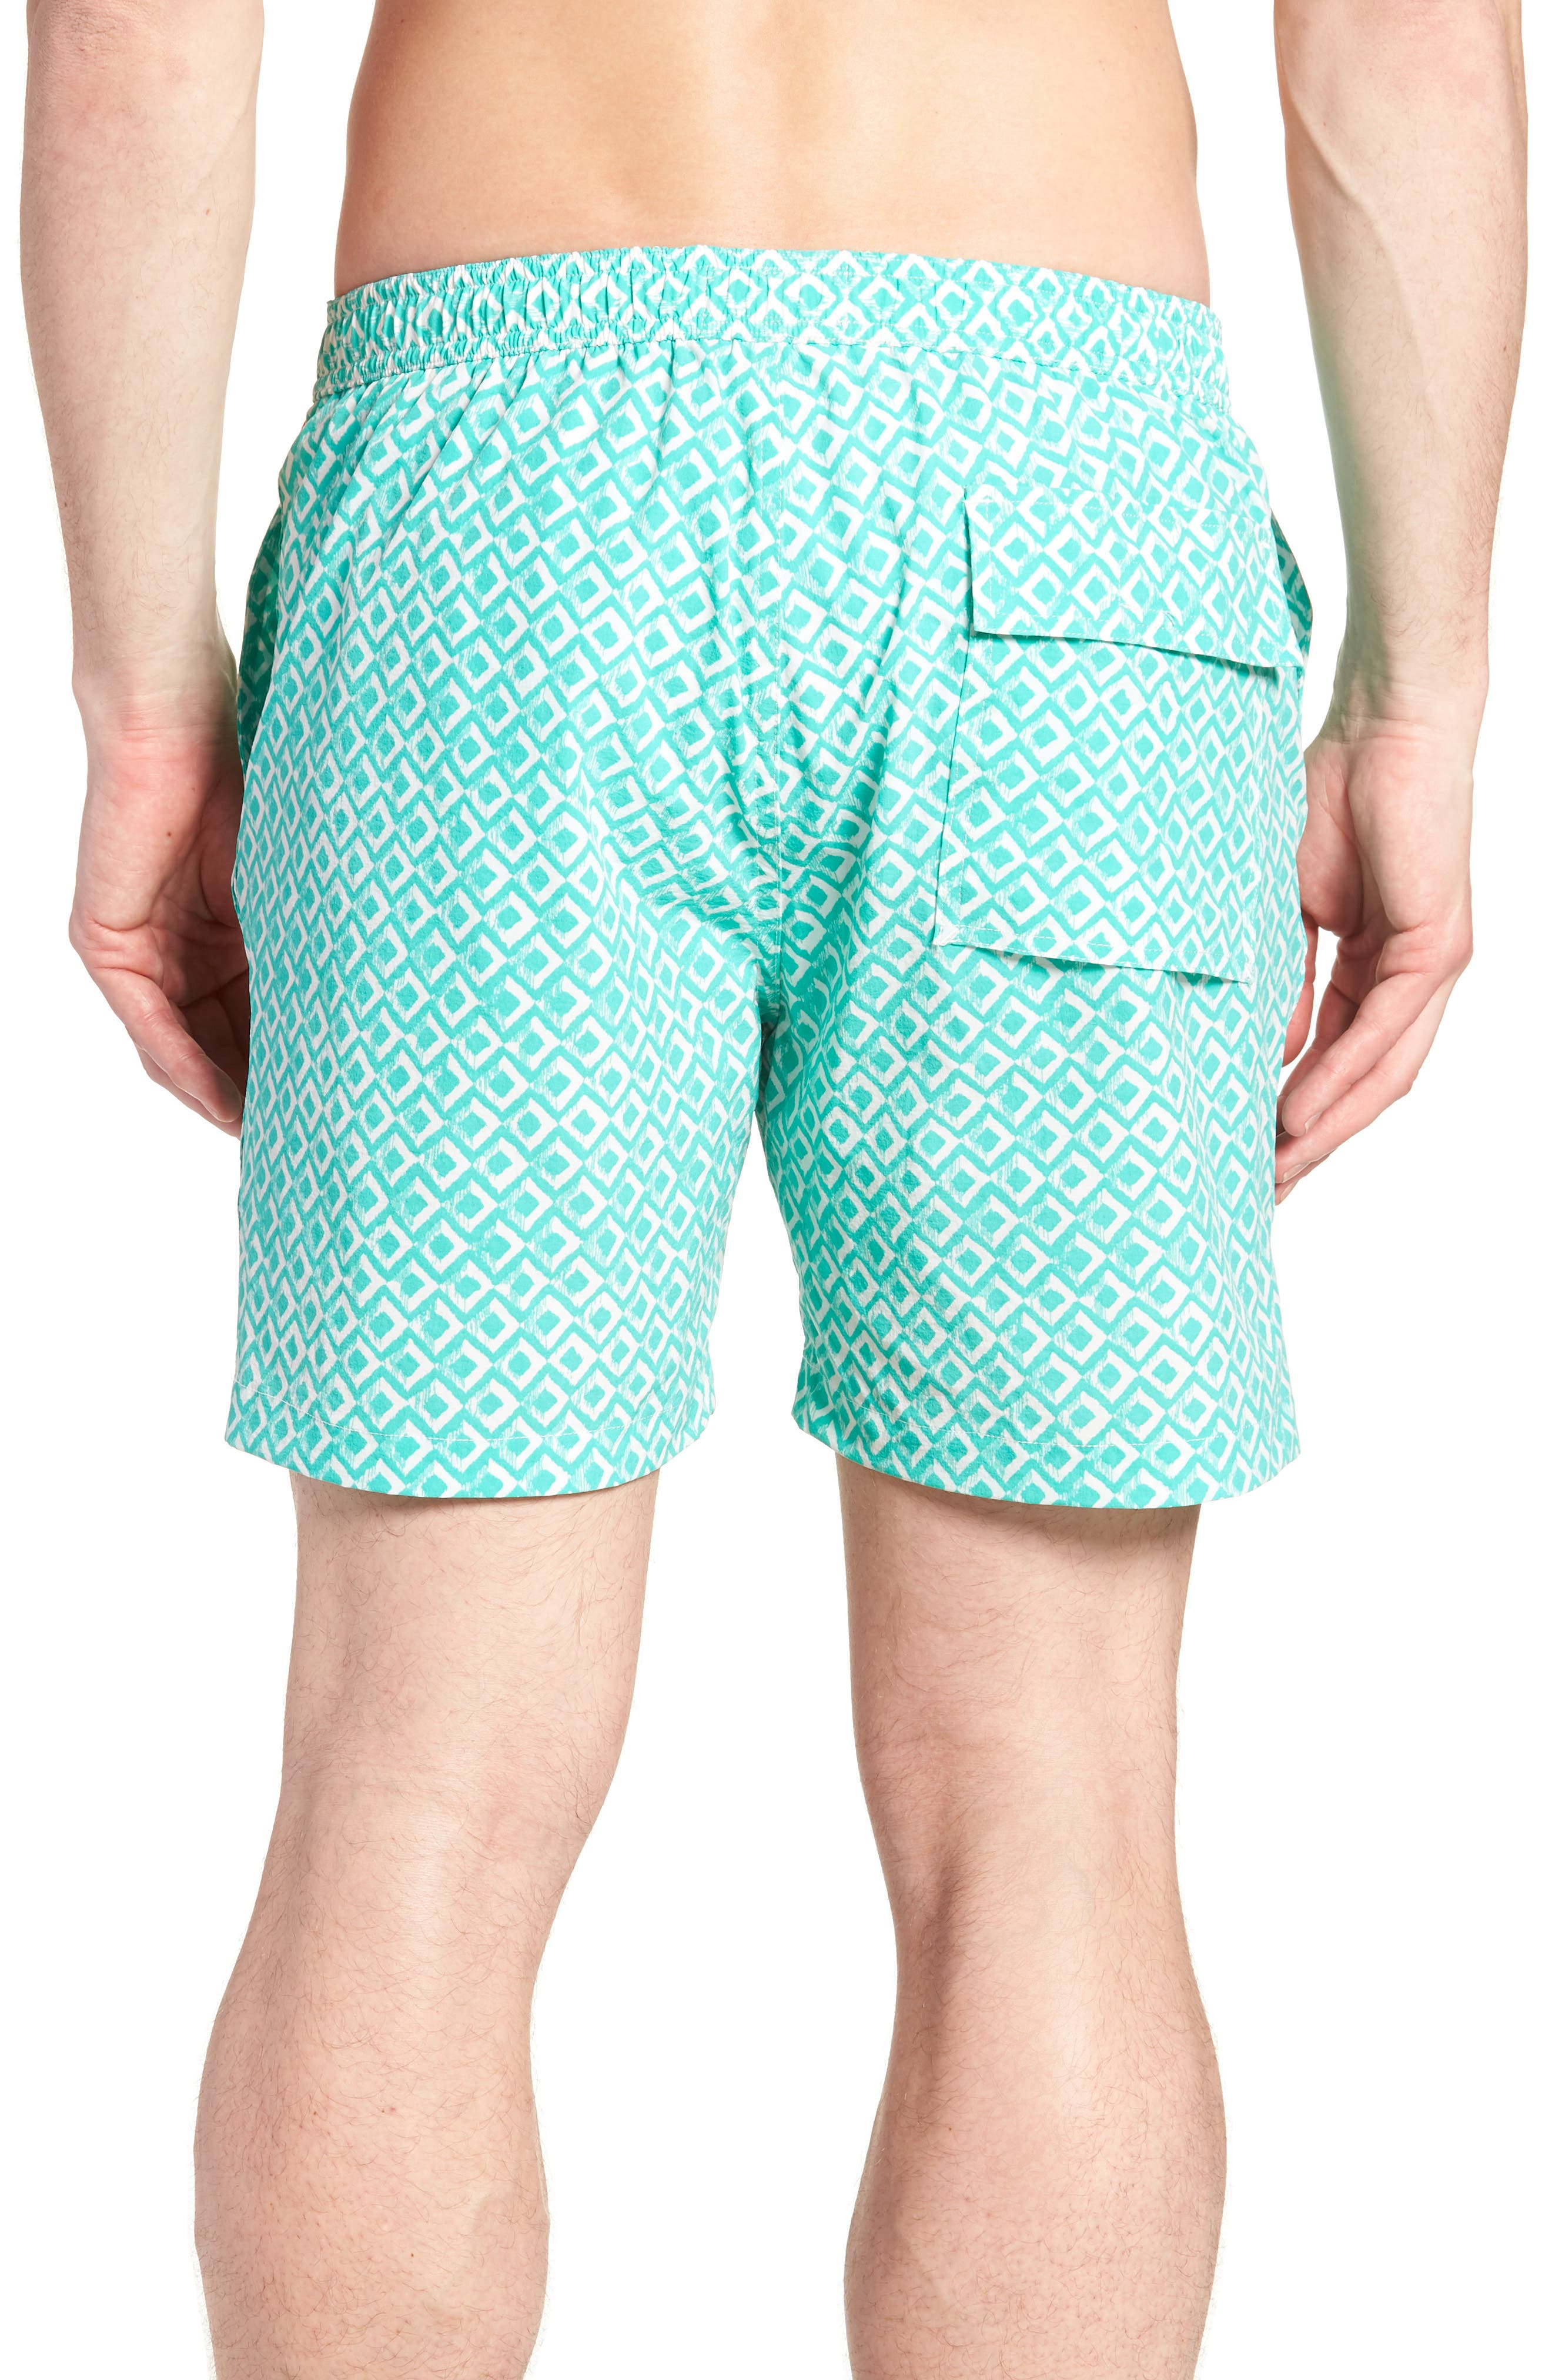 Drippy Diamond Swim Trunks,                             Alternate thumbnail 2, color,                             300